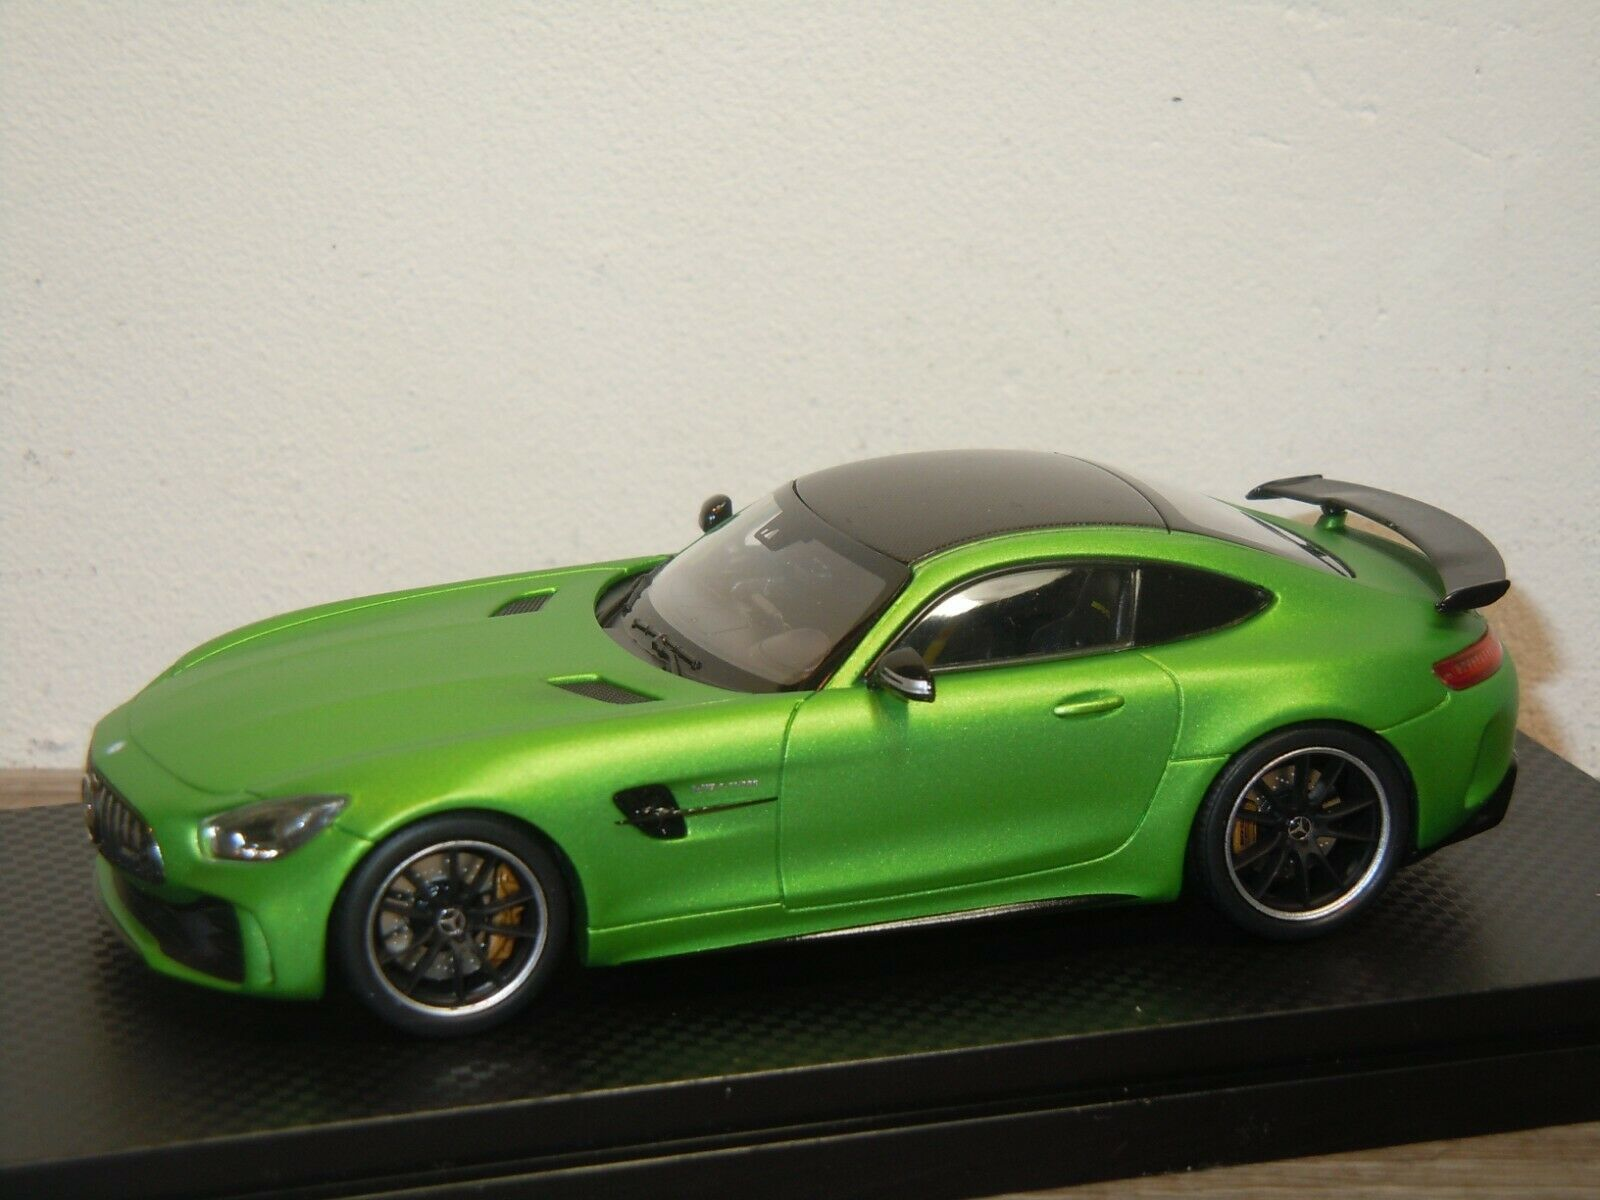 Mercedes AMG GT R - Almost Real 1 43 in Box 37510